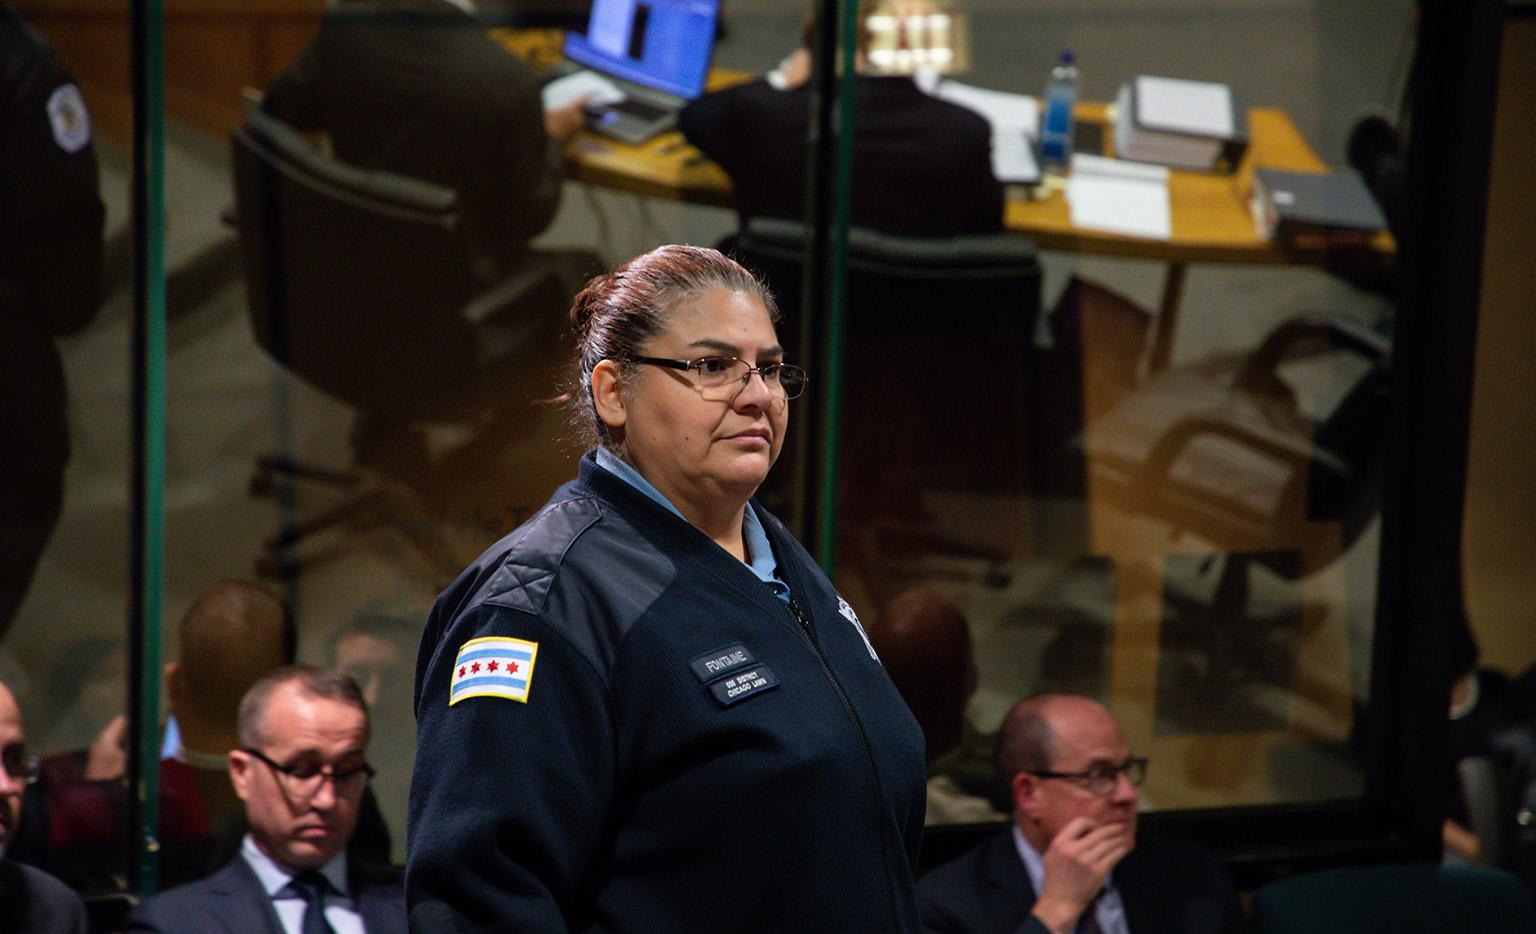 Chicago police Officer Dora Fontaine takes the witness stand on Wednesday, Nov. 28, 2018. (Zbigniew Bzdak / Chicago Tribune / Pool)